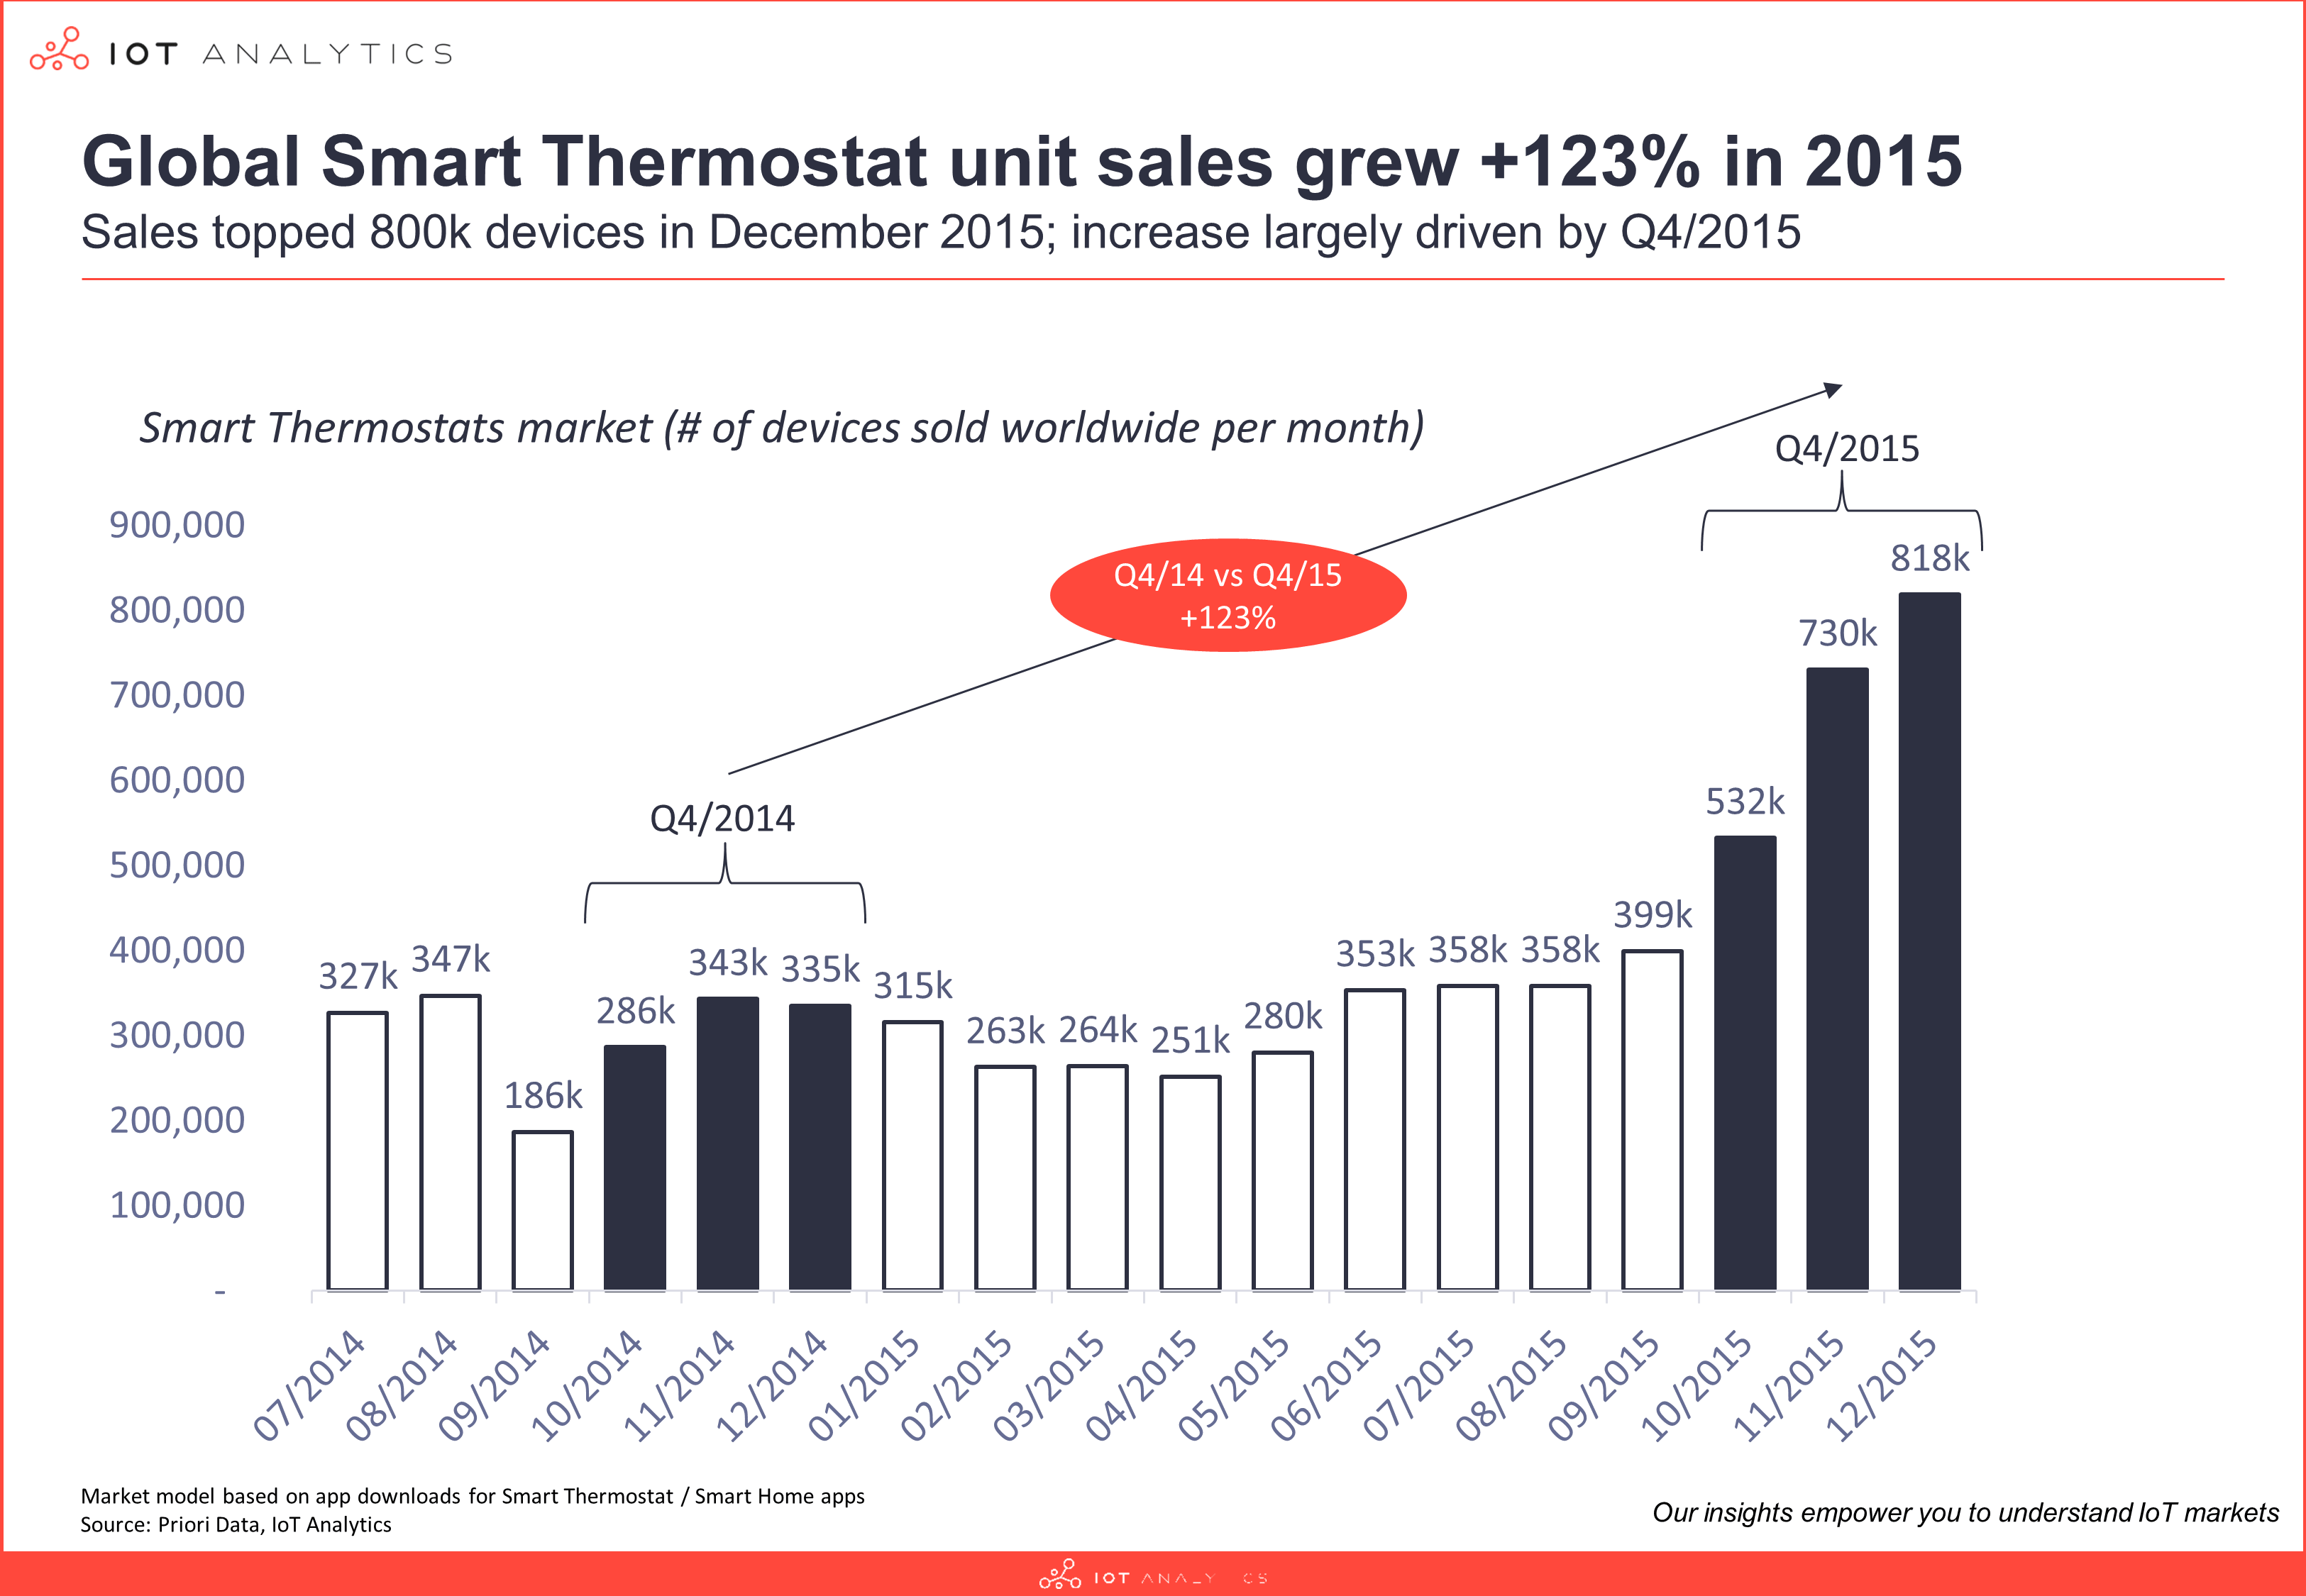 Smart thermostats market